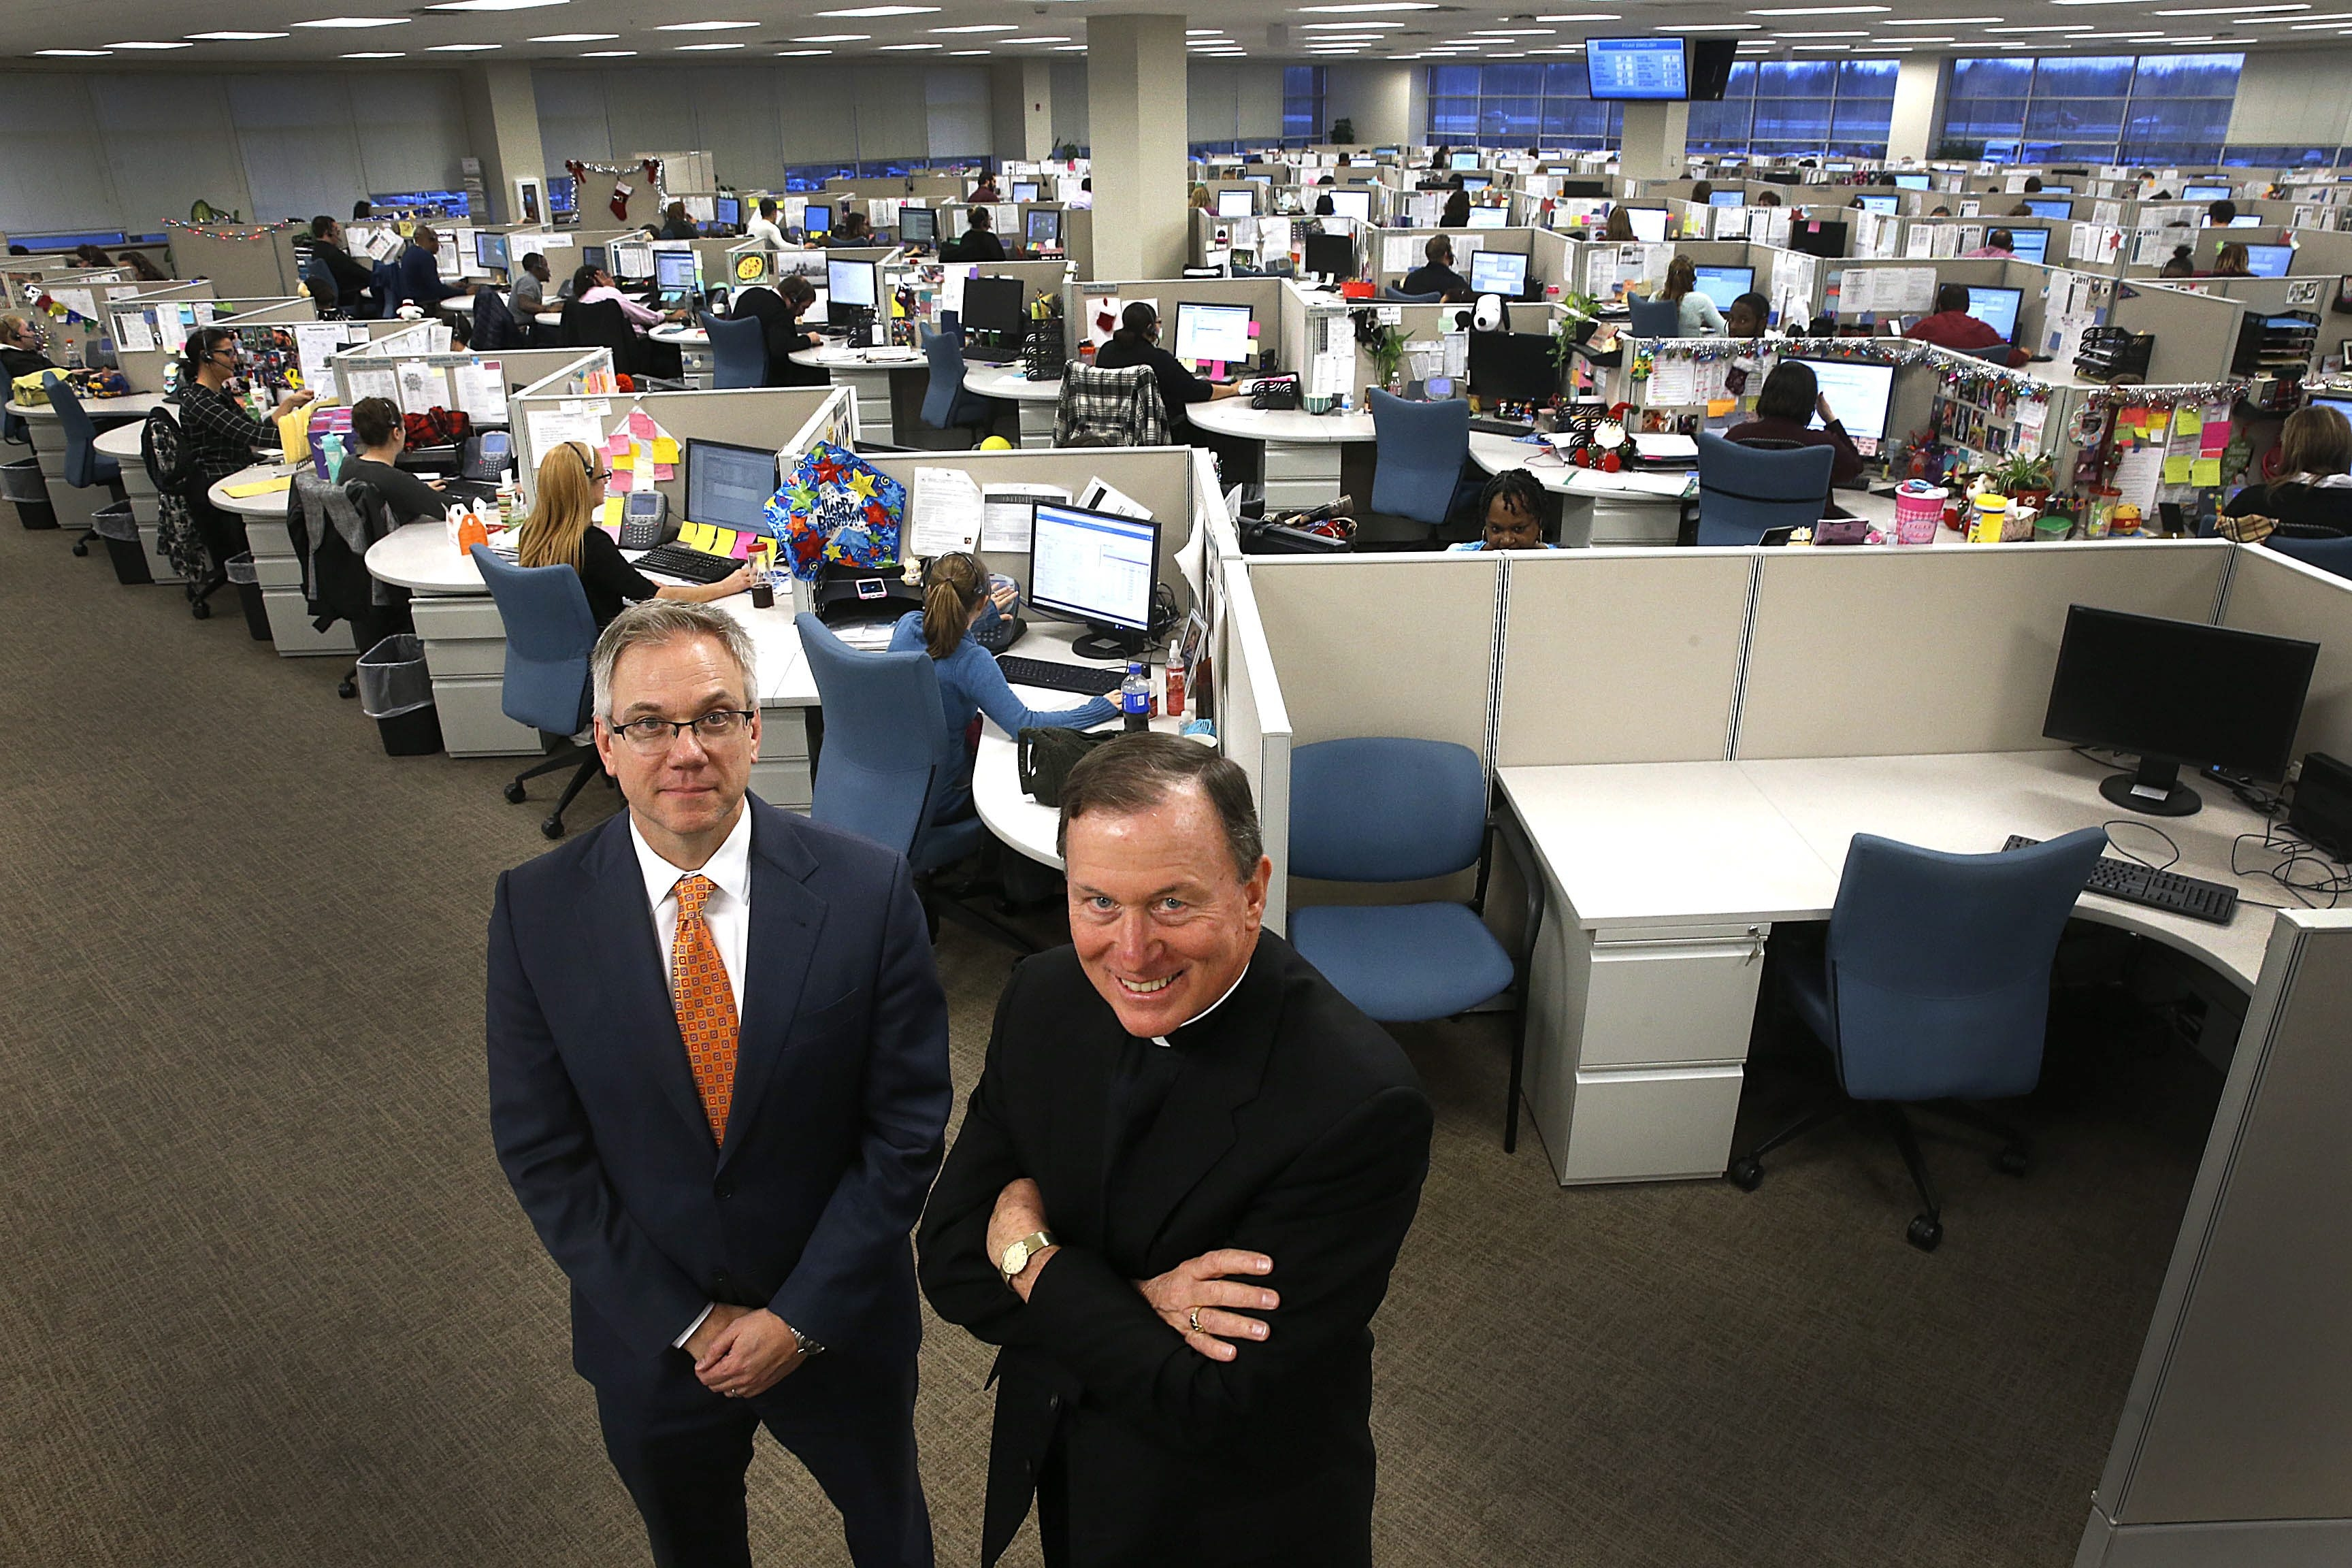 The Rev. Patrick J. Frawley, right,  president and CEO of Fidelis Care, and David Thomas, executive vice president and COO, show off the health insurer's expansion at its Getzville offices. (Robert Kirkham/Buffalo News)